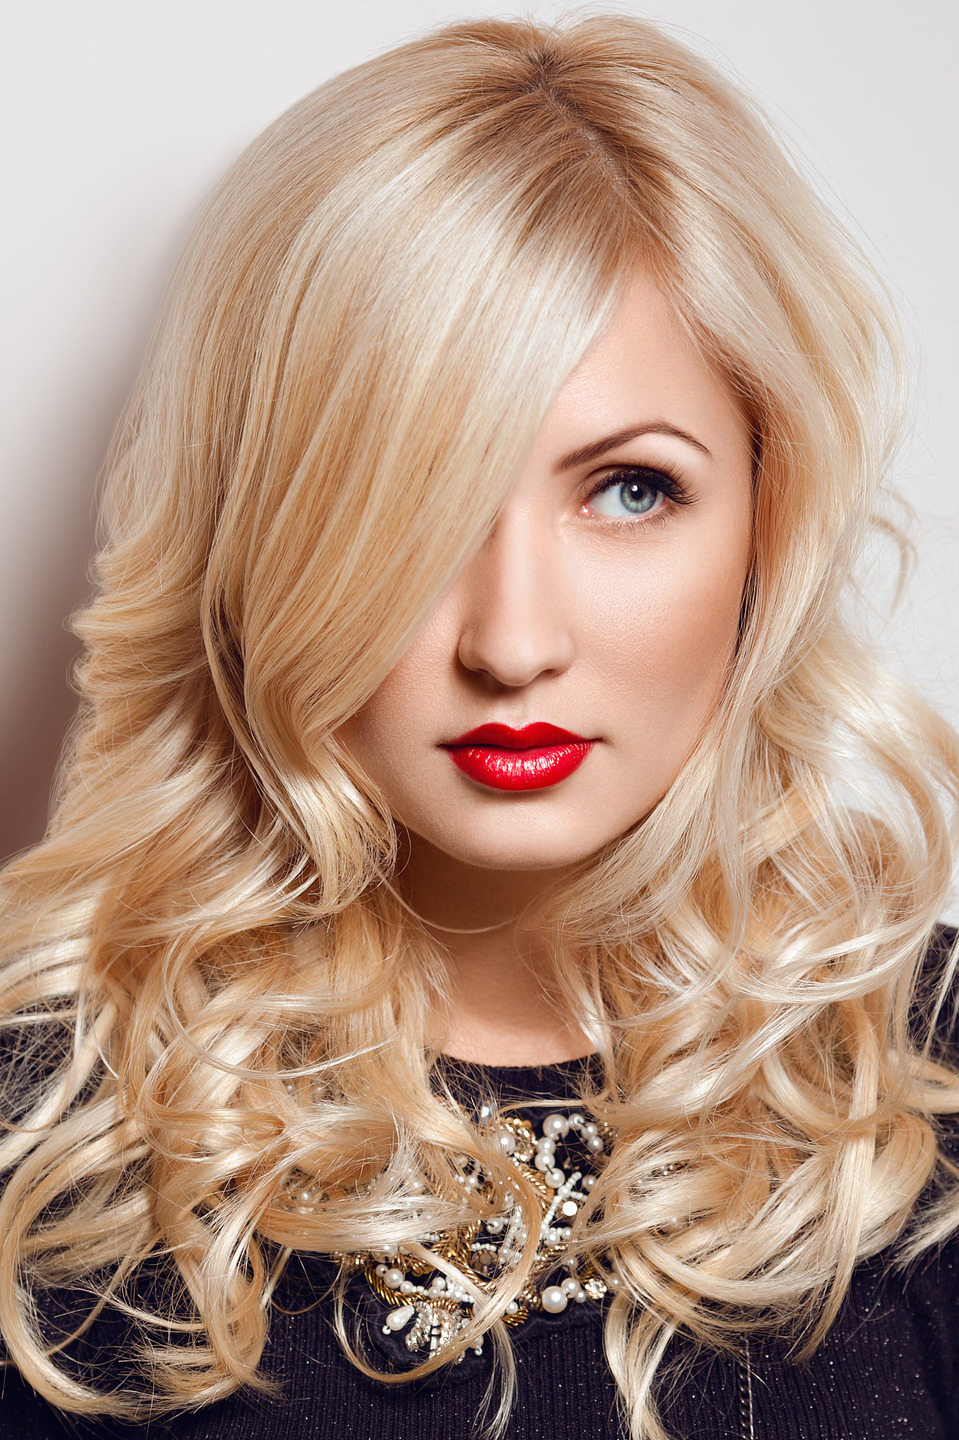 Beautiful blonde with red lips | glamour, model, woman, blonde, hair-